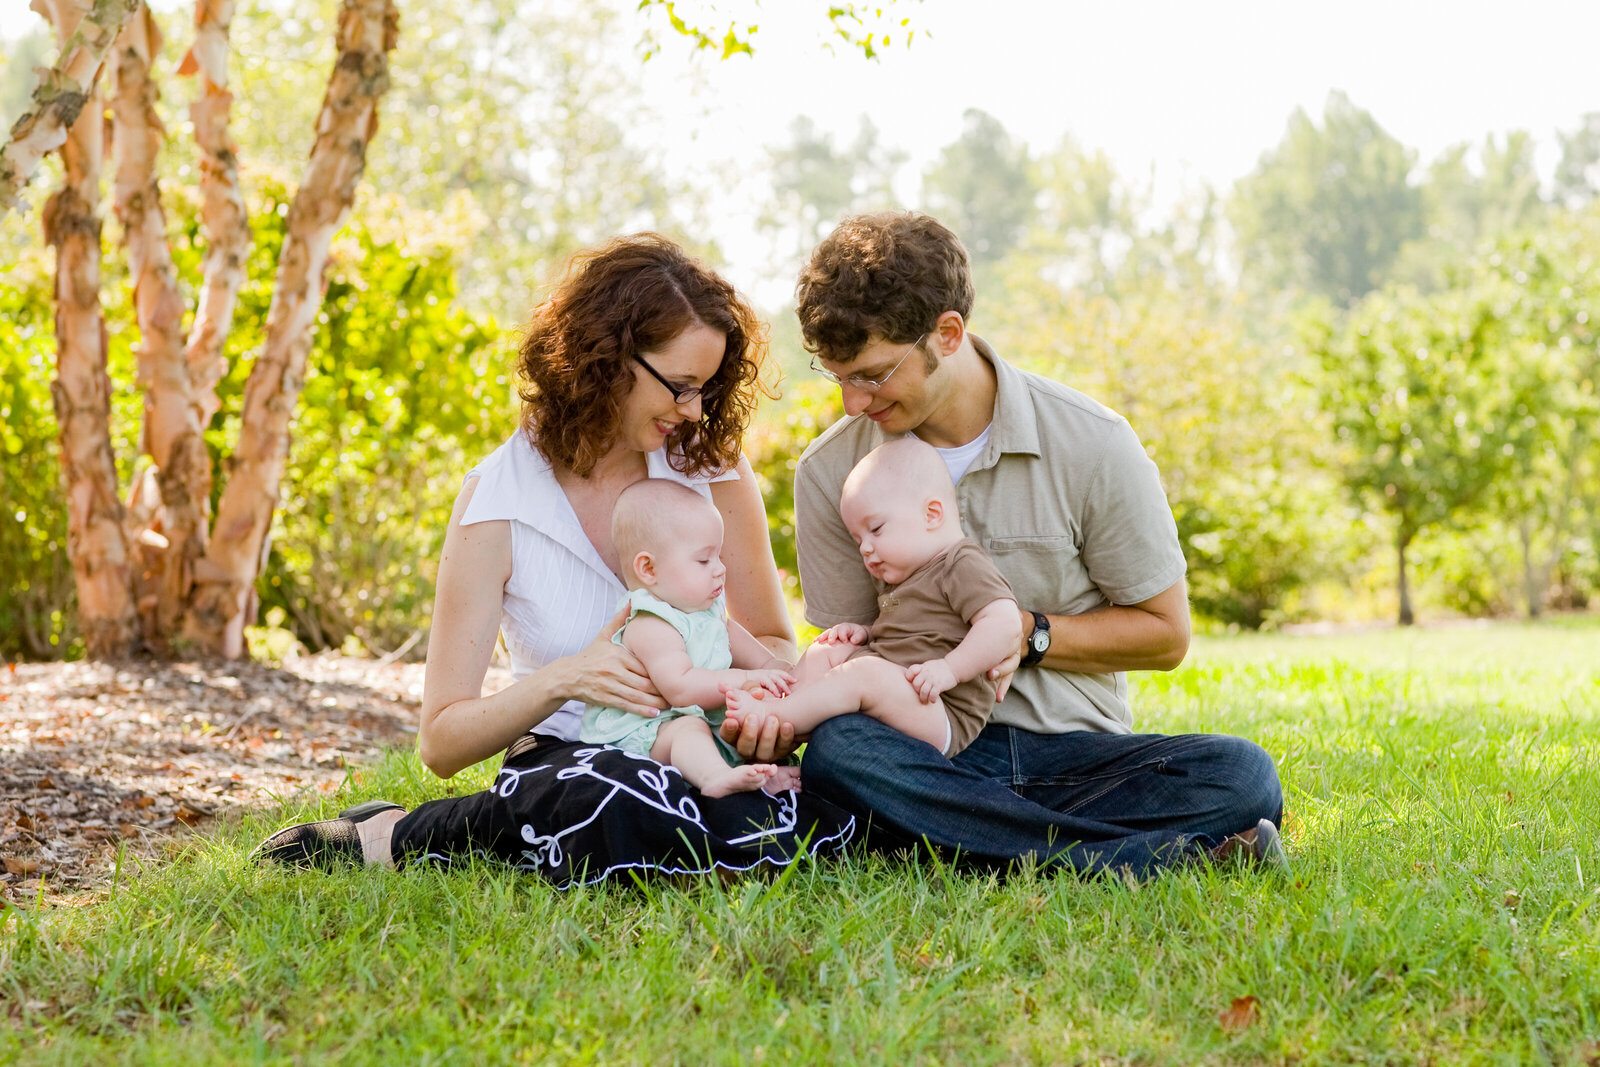 Family-Photographer-Nashville-59